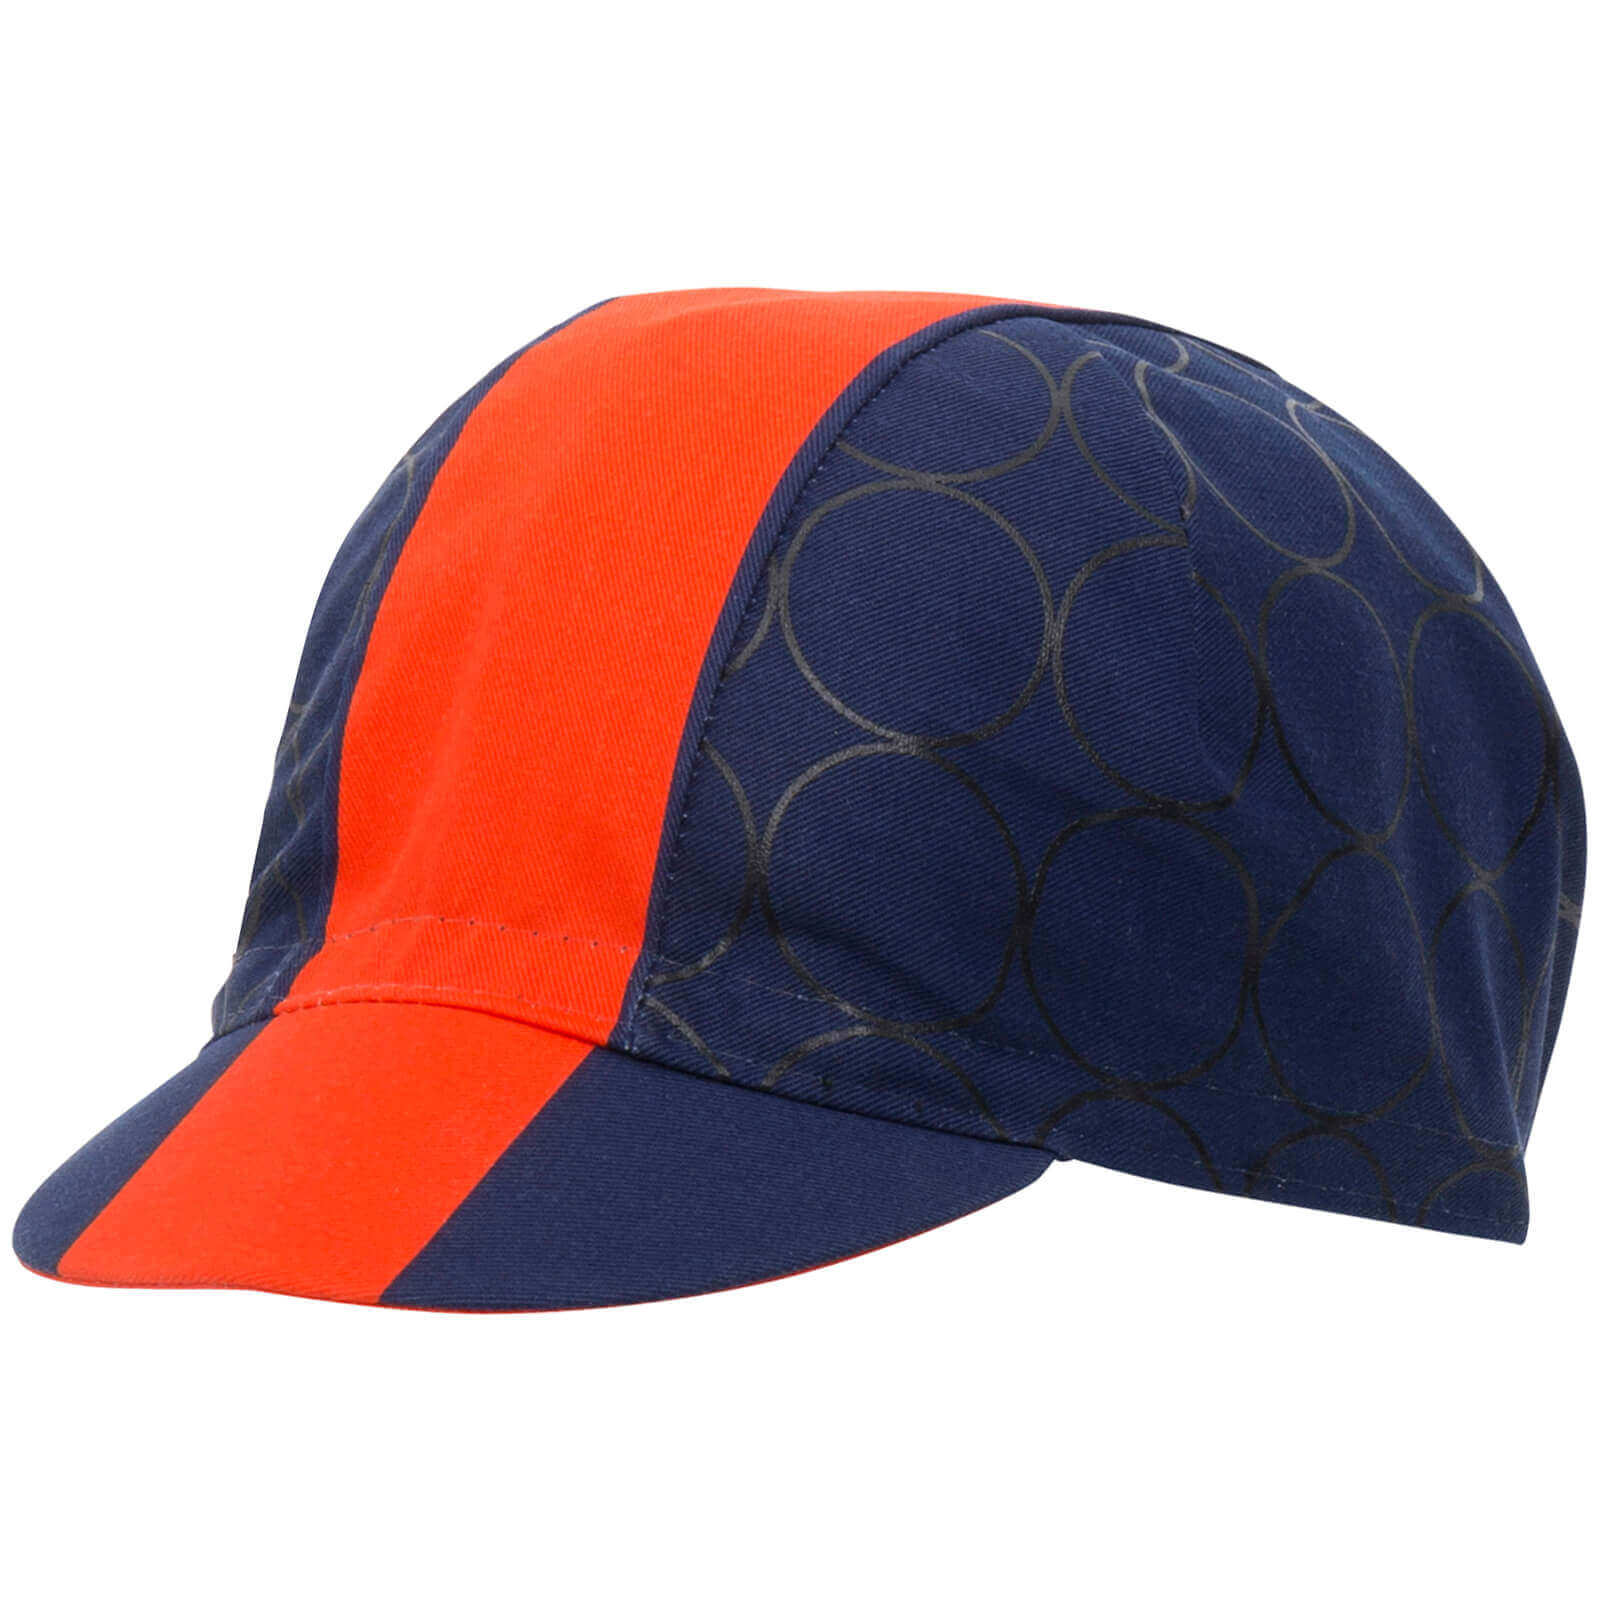 Santini Cotton Redux Design Cap - Orange